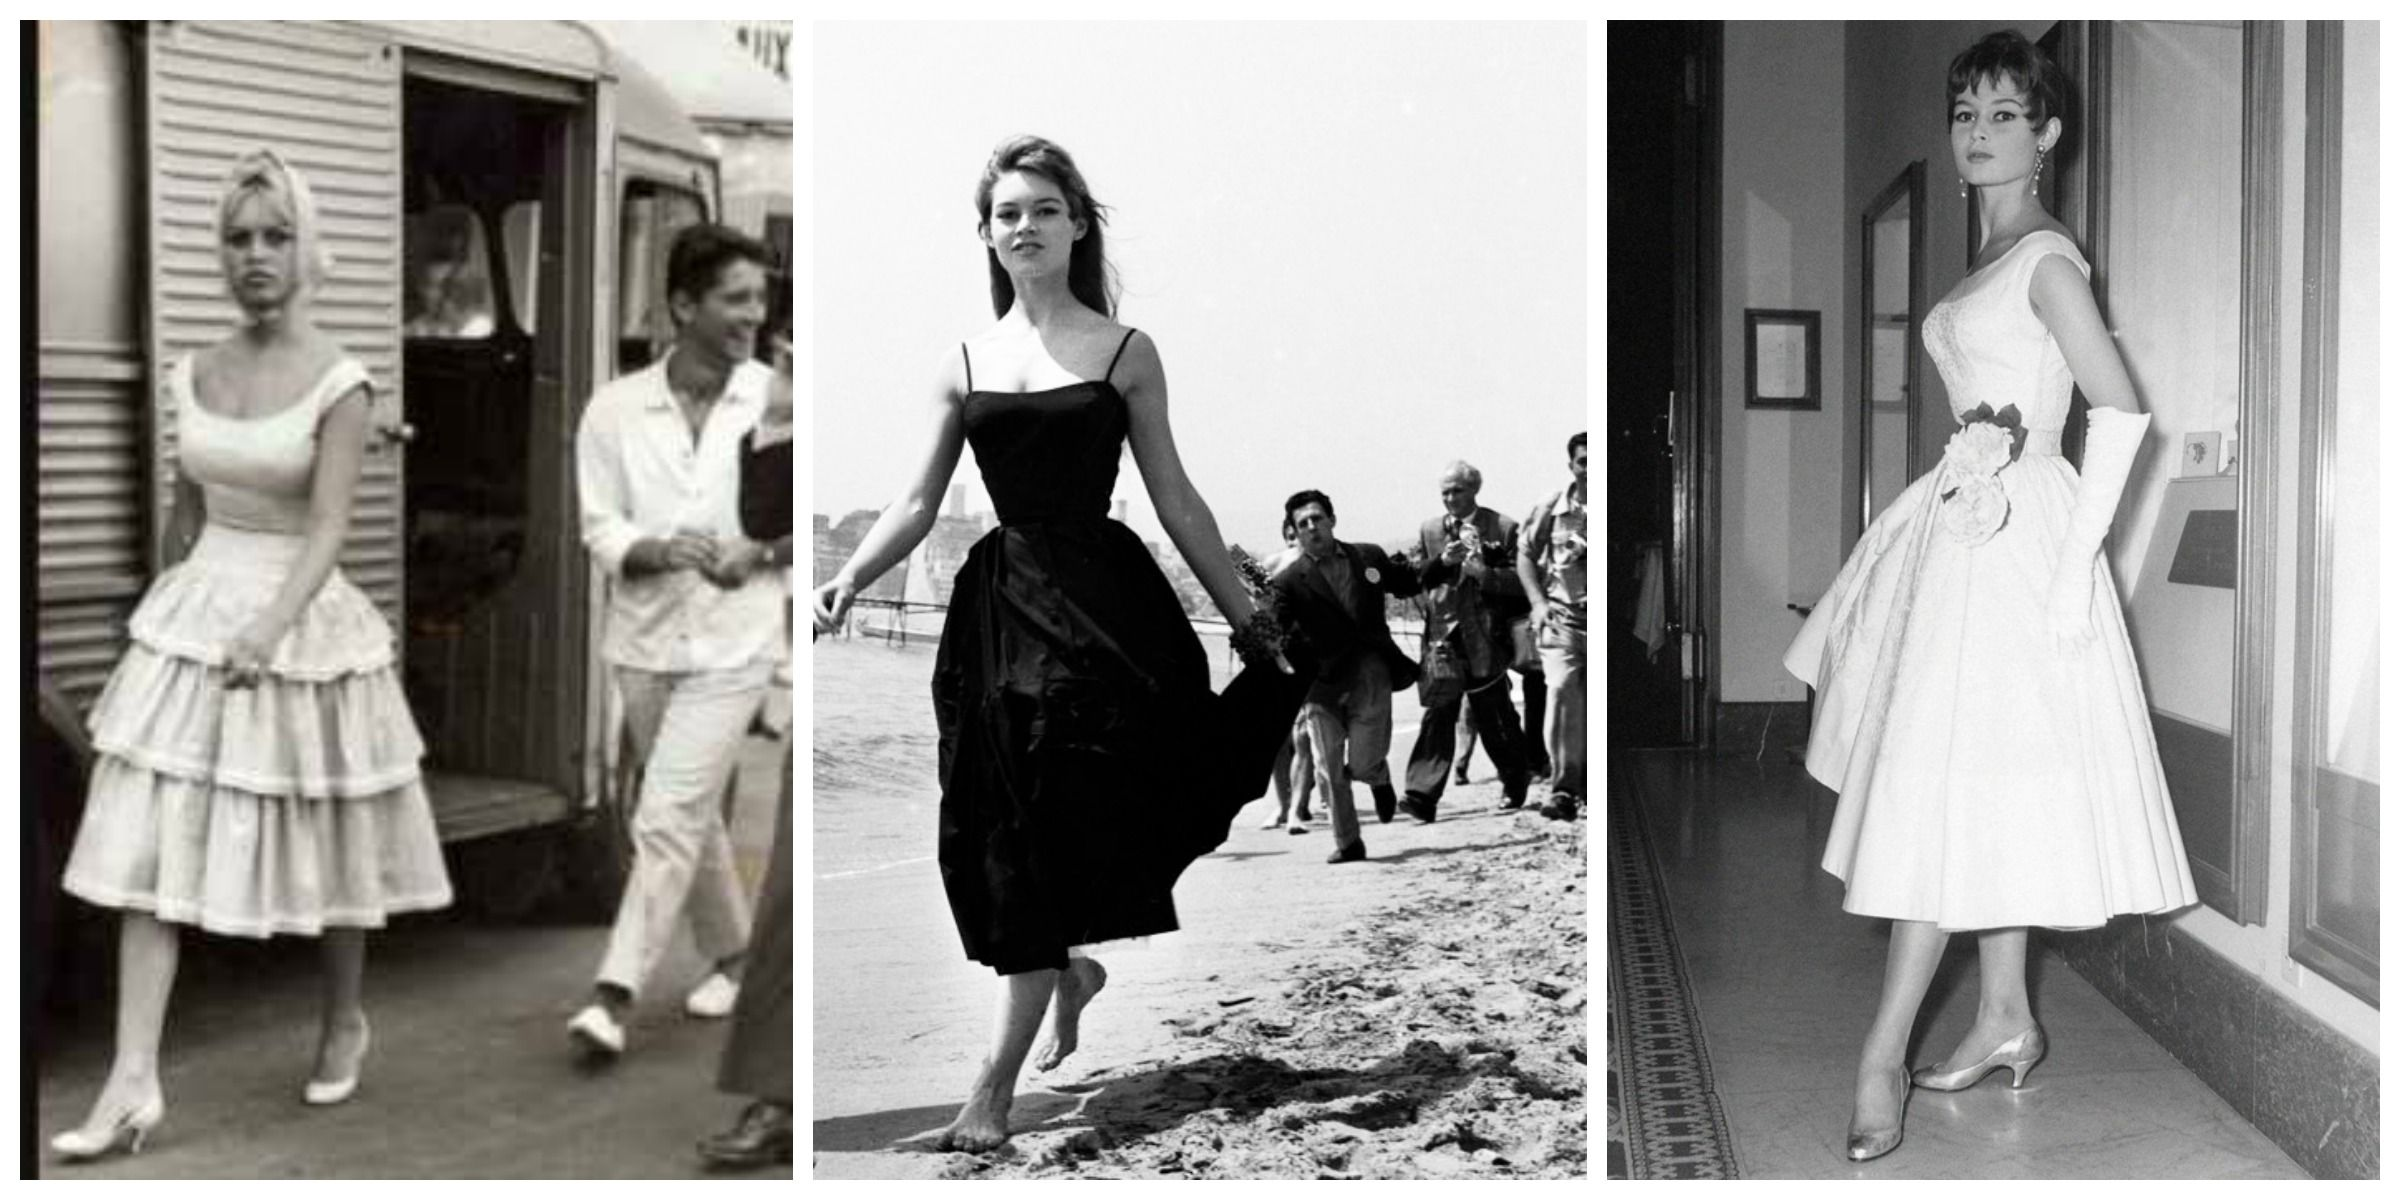 e0d1eafc6fdc Style Icon: Brigitte Bardot Style Tips for the Curvy Women | Silhouette  Trend